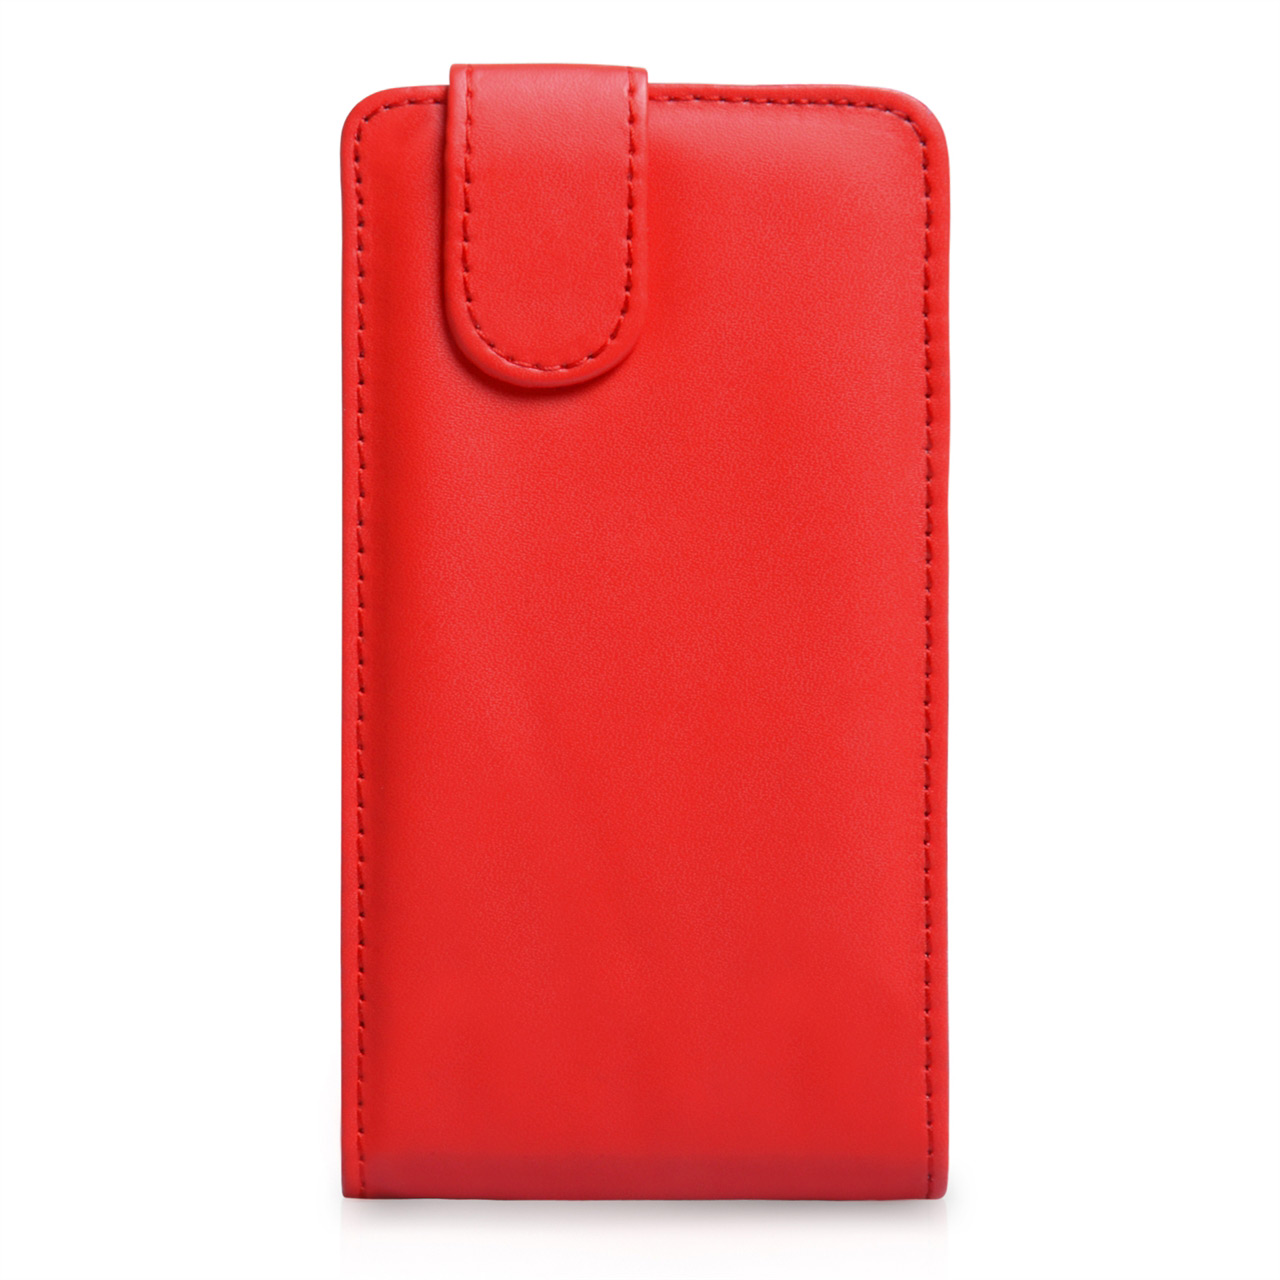 YouSave Accessories Nokia Lumia 925 Leather Effect Flip Case - Red